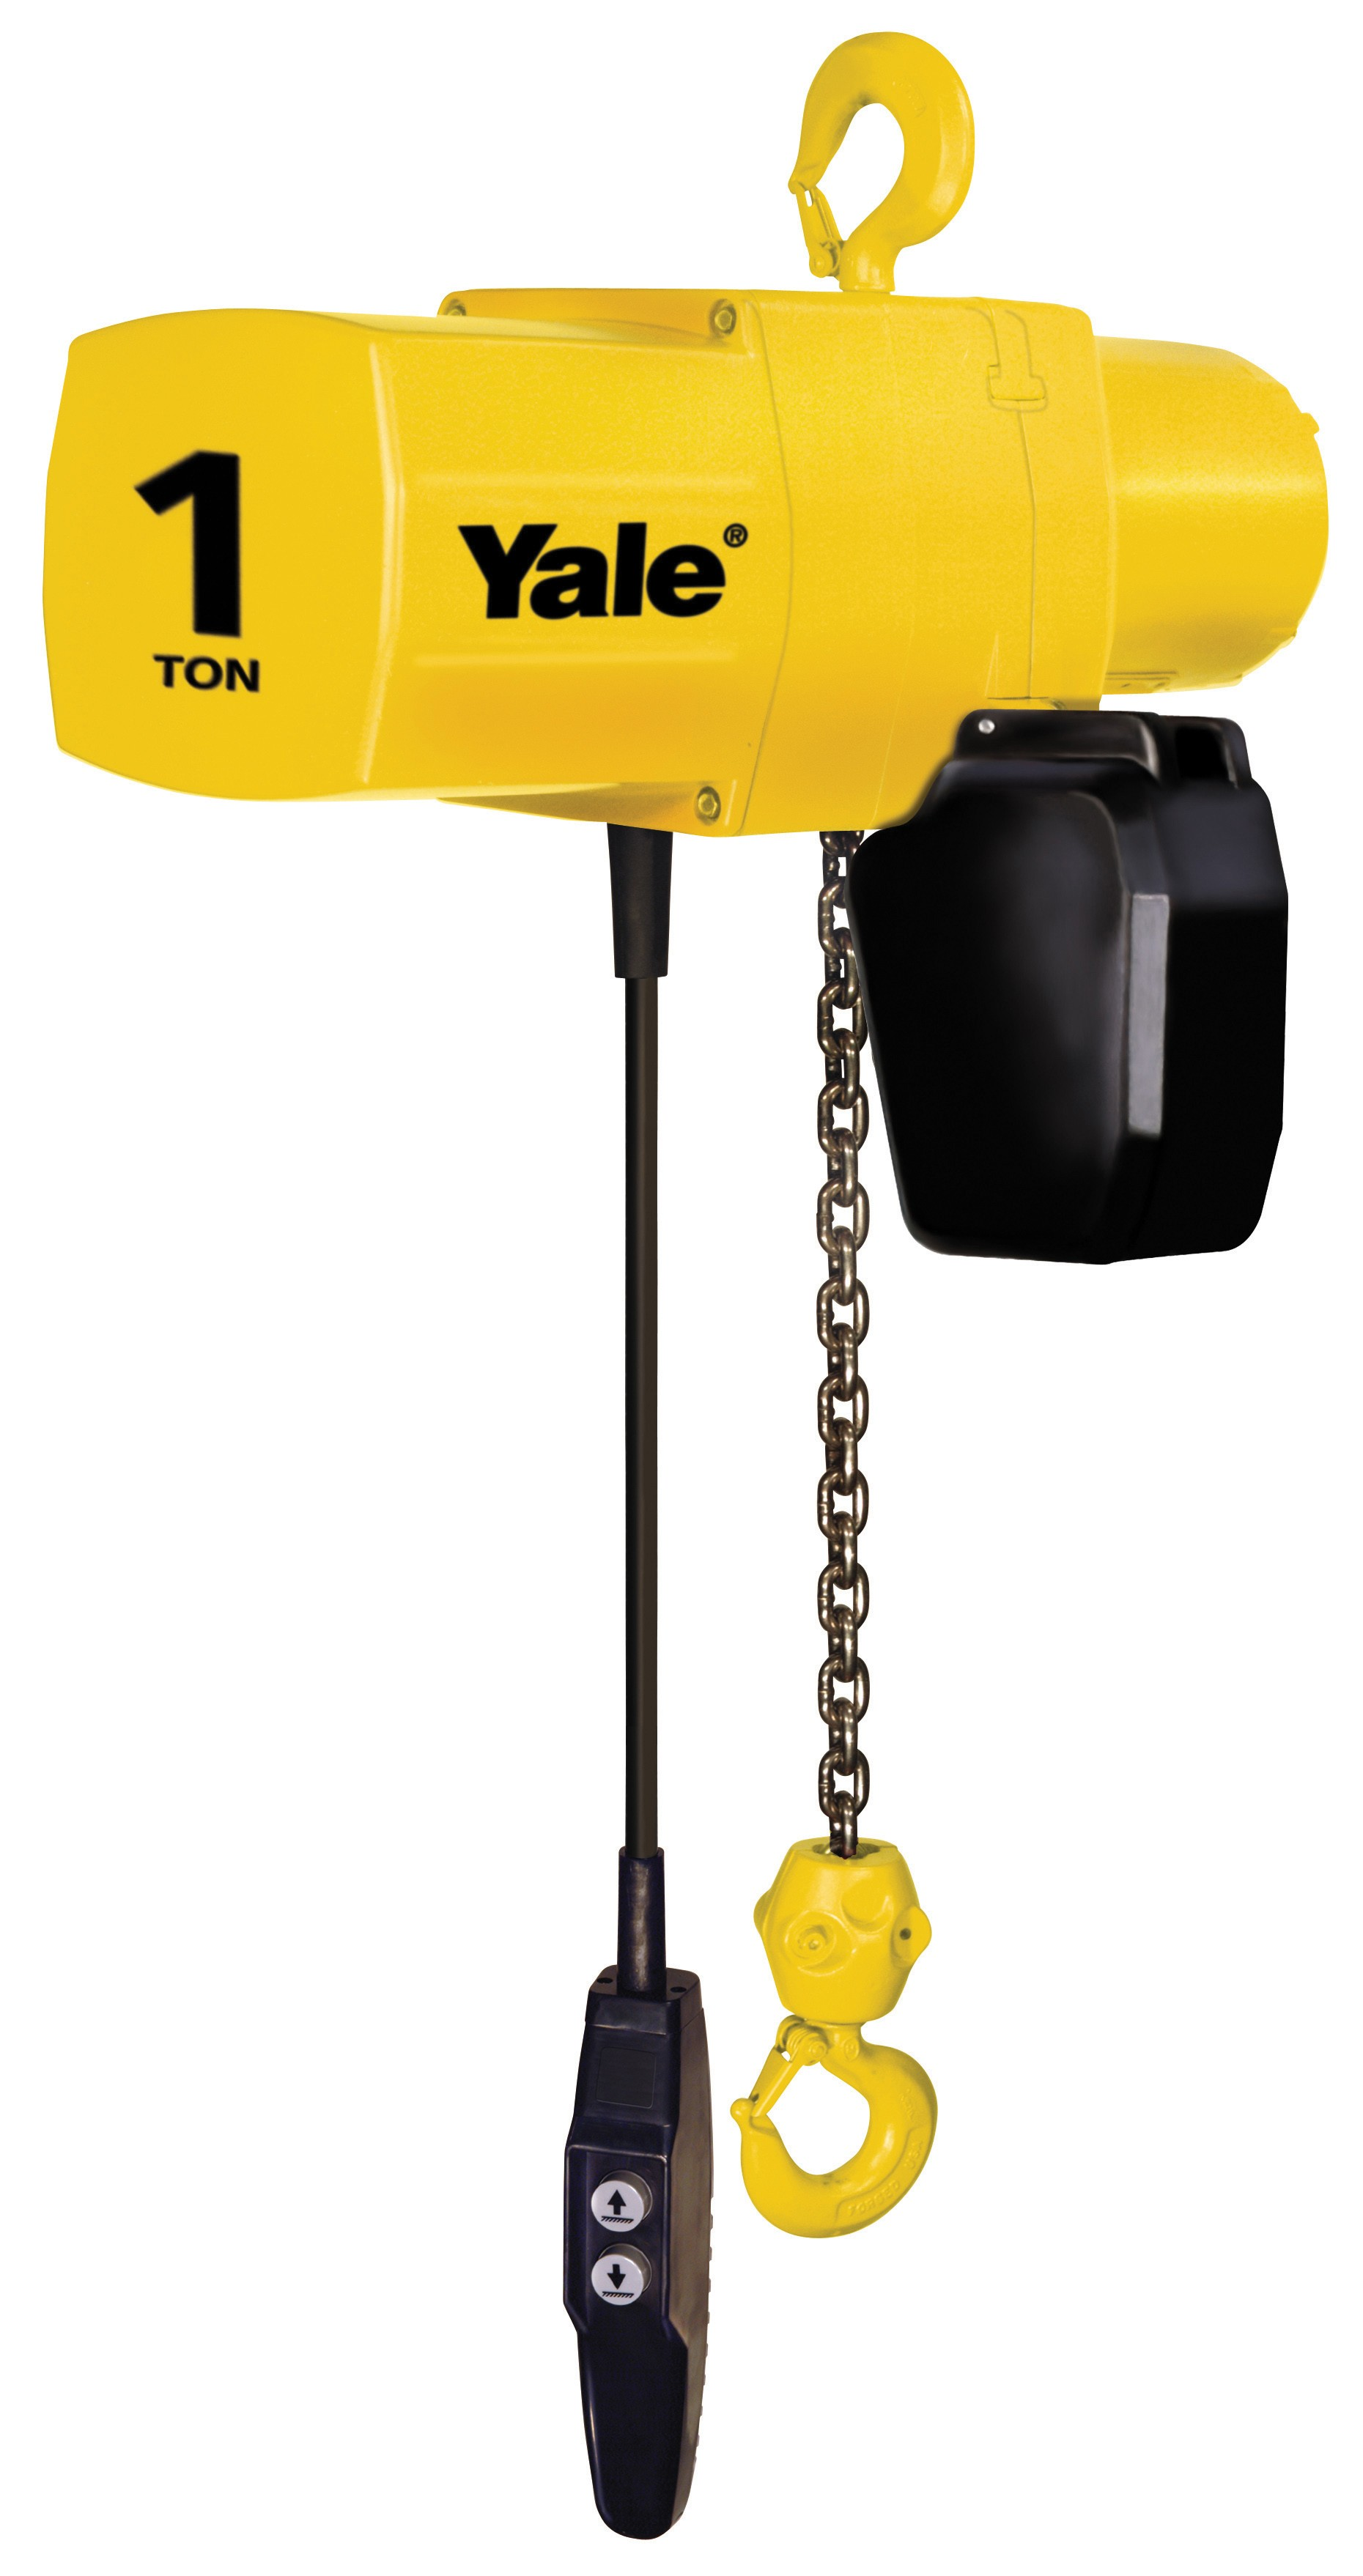 hight resolution of yale yjl electric chain hoist 1 2 ton yale yjl 3 ton yale hoist wiring diagram for